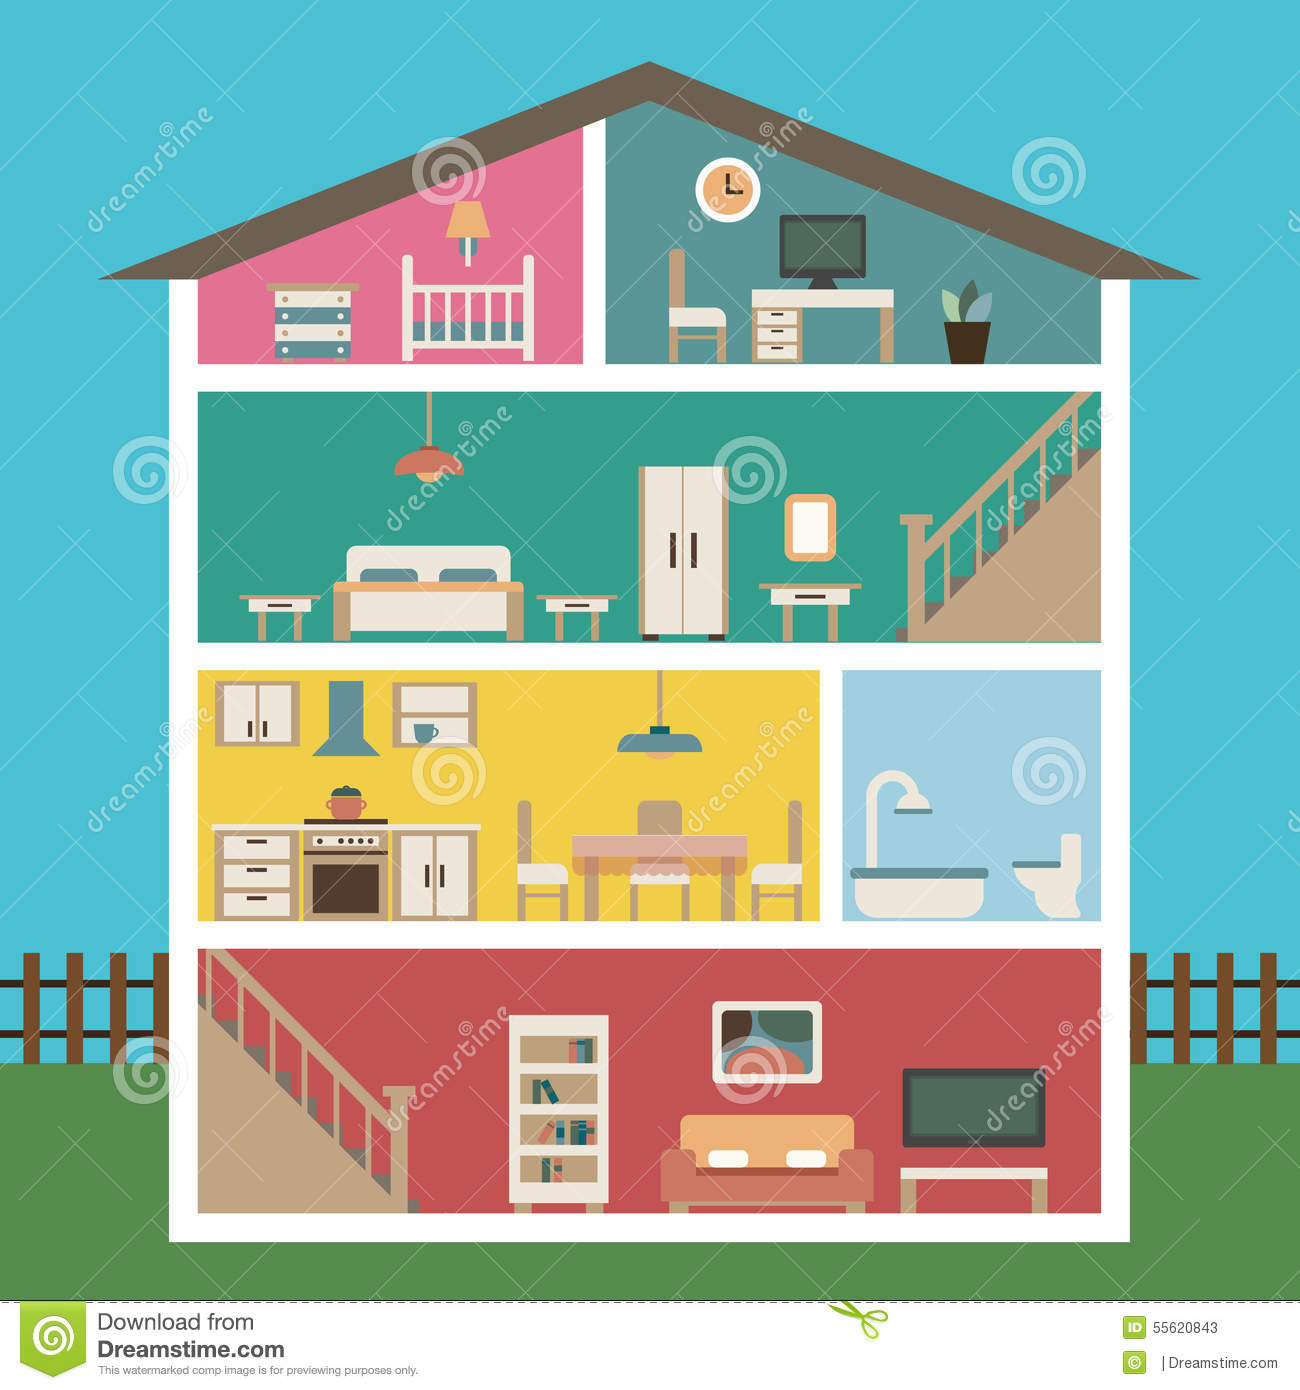 House in cut detailed modern house interior stock vector for Furniture house